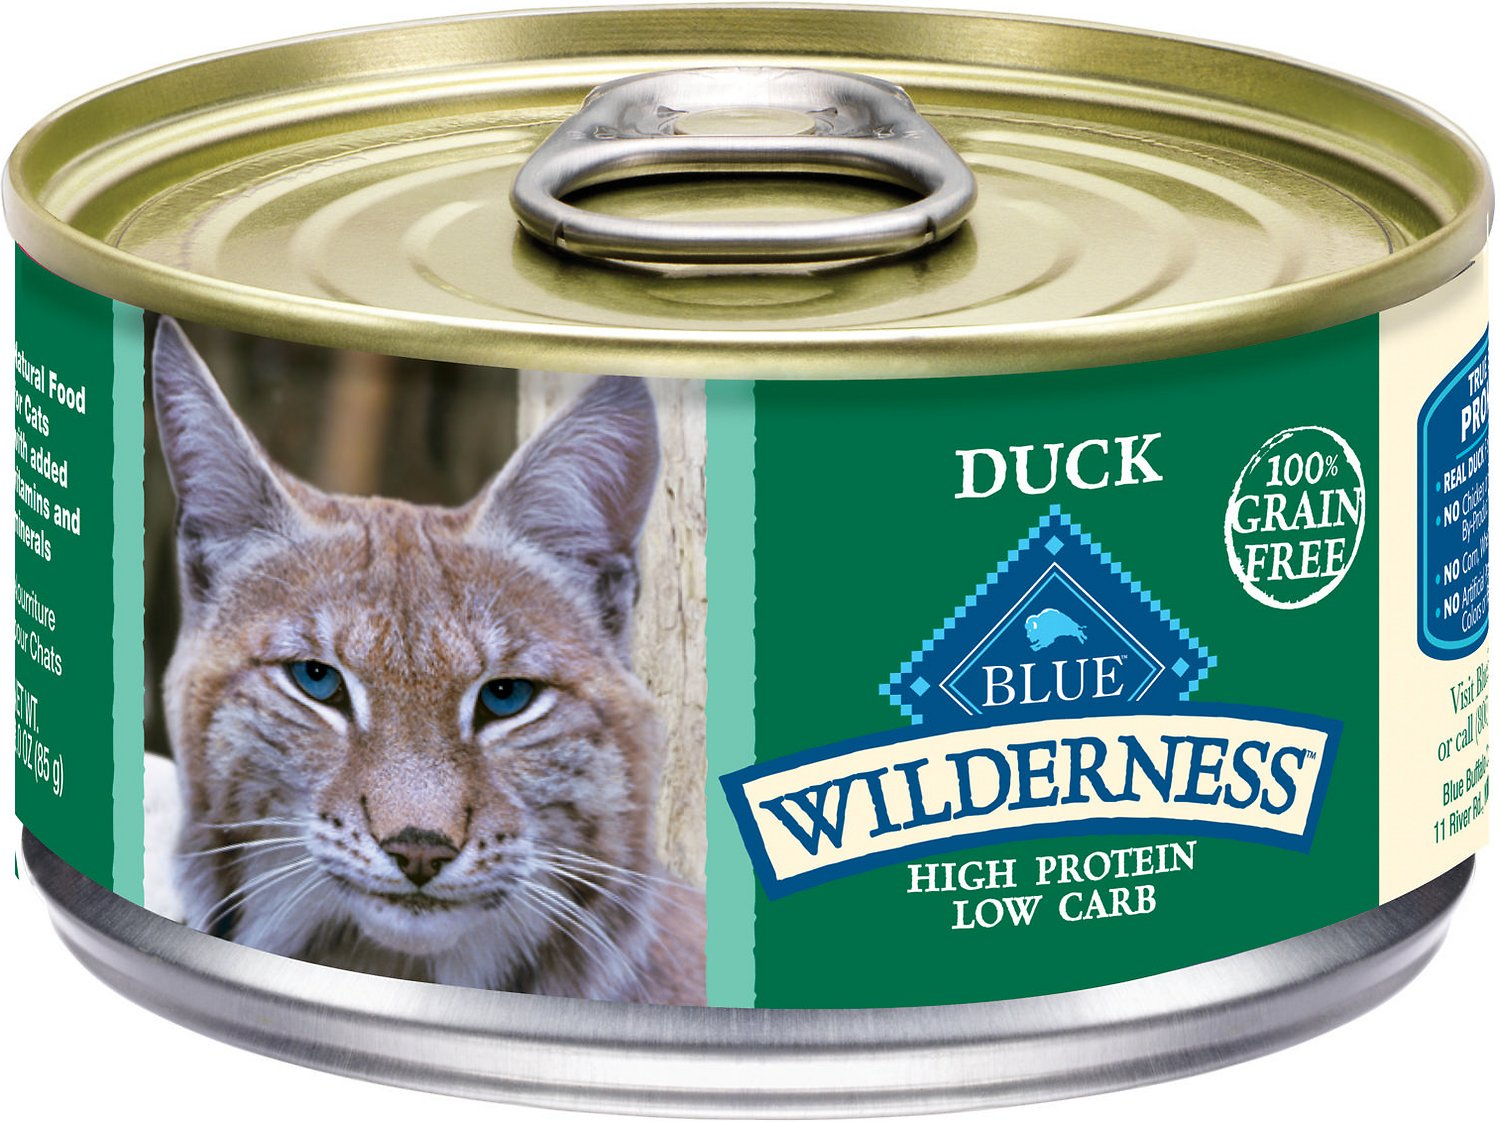 Blue Buffalo Wilderness Duck Grain-Free Canned Cat Food Image